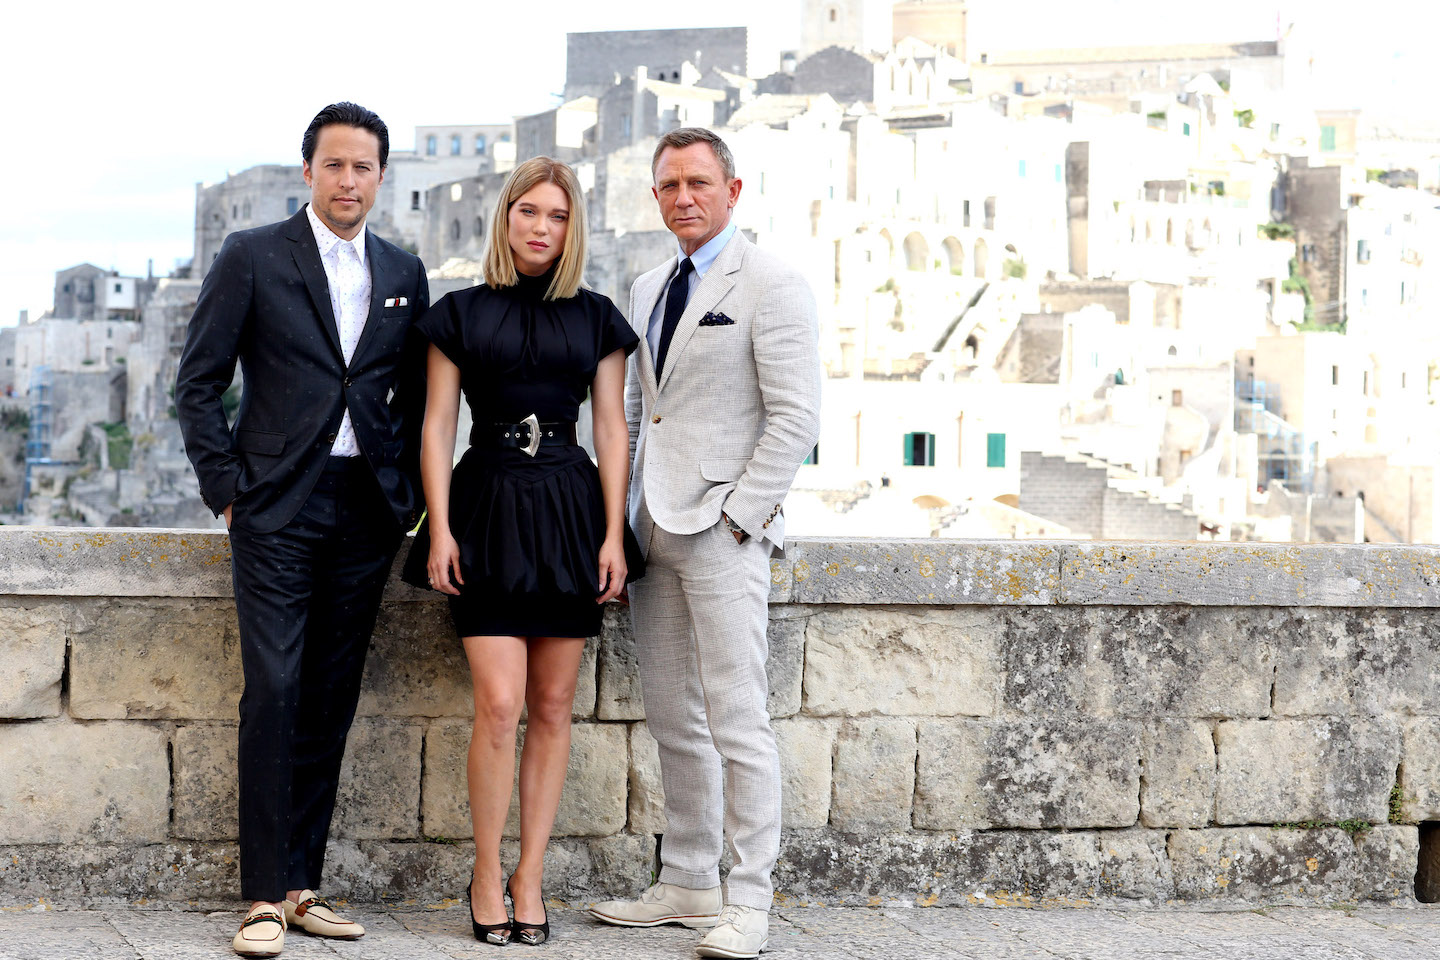 Daniel Craig (James Bond), Léa Seydoux (Madeleine Swann) and director Cary Joji Fukunaga arrive in Matera, Italy, to continue filming `No Time To Die.` (Photo copyright: Franco Origlia; provided by EPK.TV)